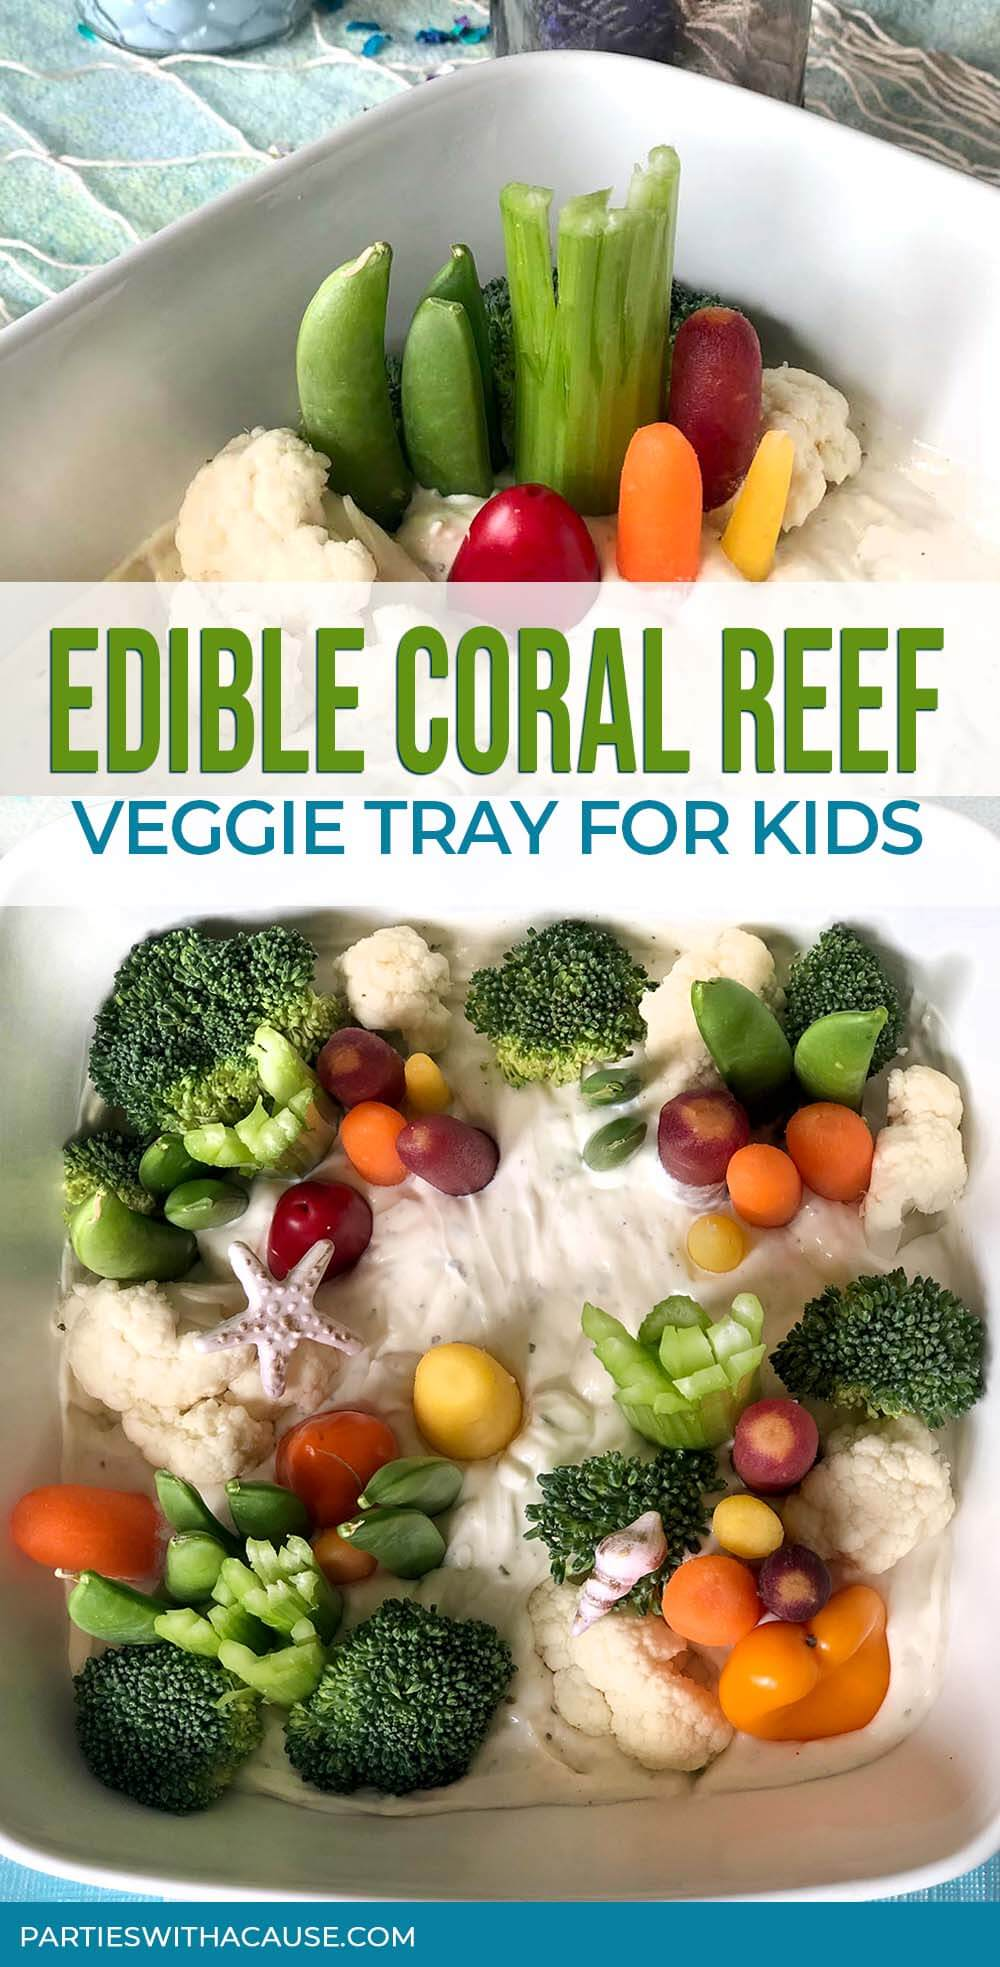 Edible coral reef veggies tray for kids by Salt Lake party stylist